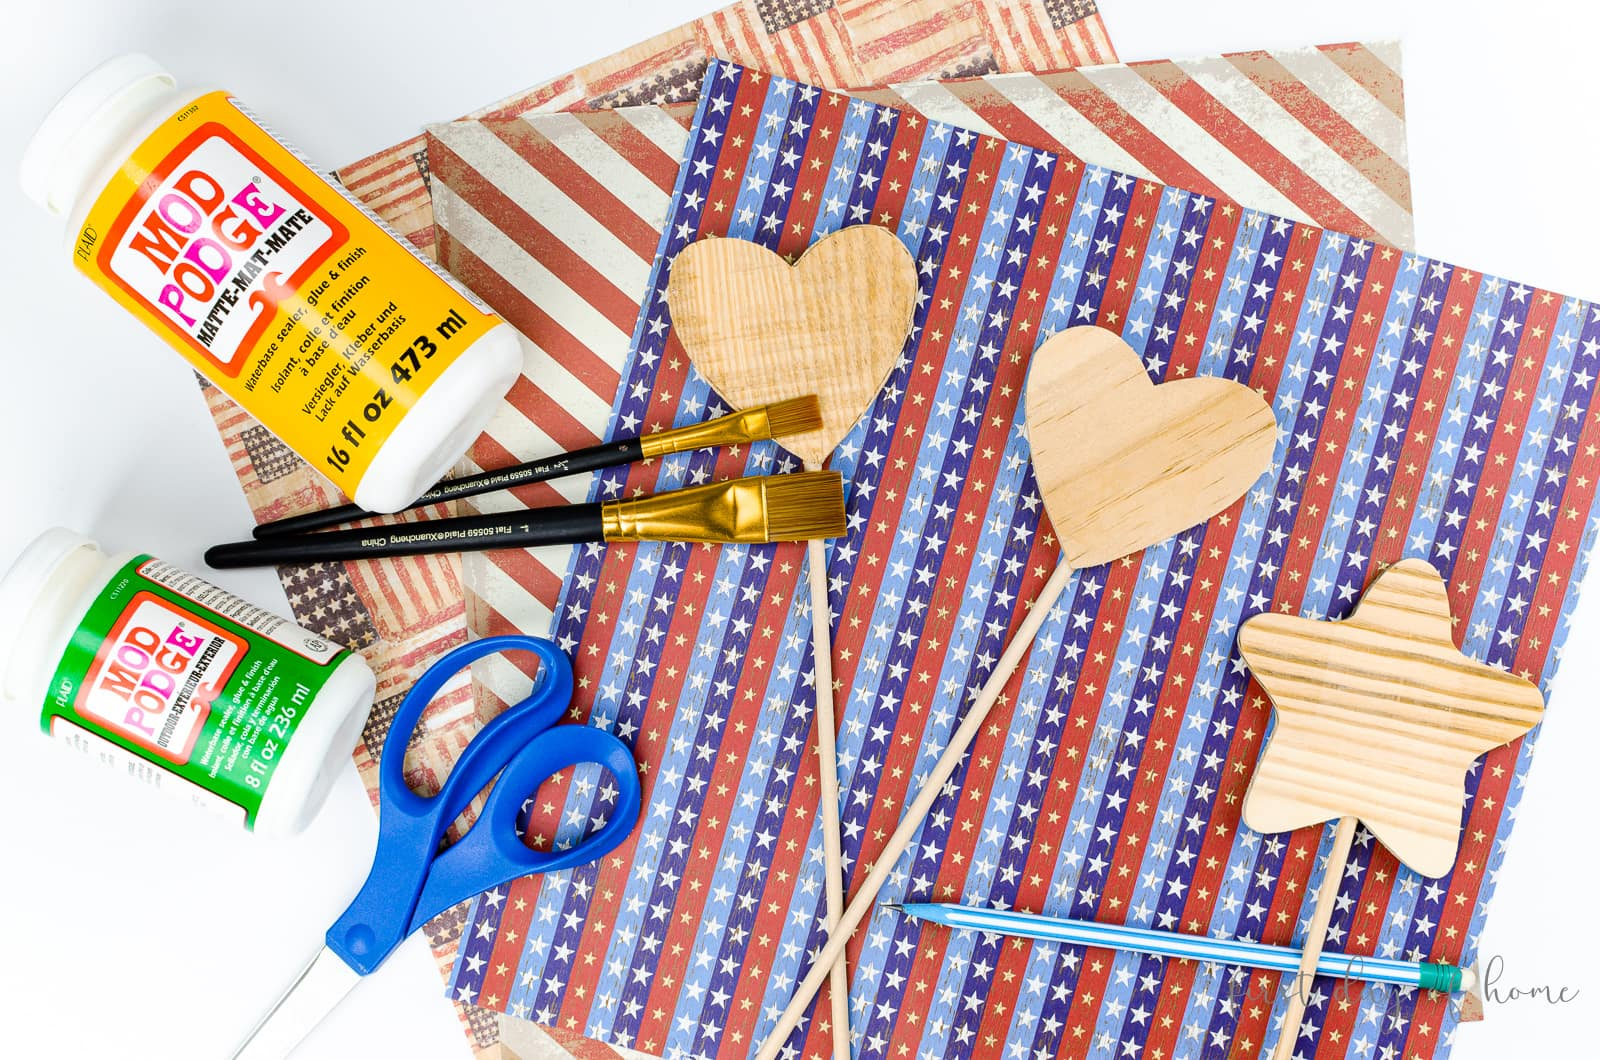 Supplies to make decorative stakes for a garden, including Mod Podge, scrapbook paper, scissors and paint brushes